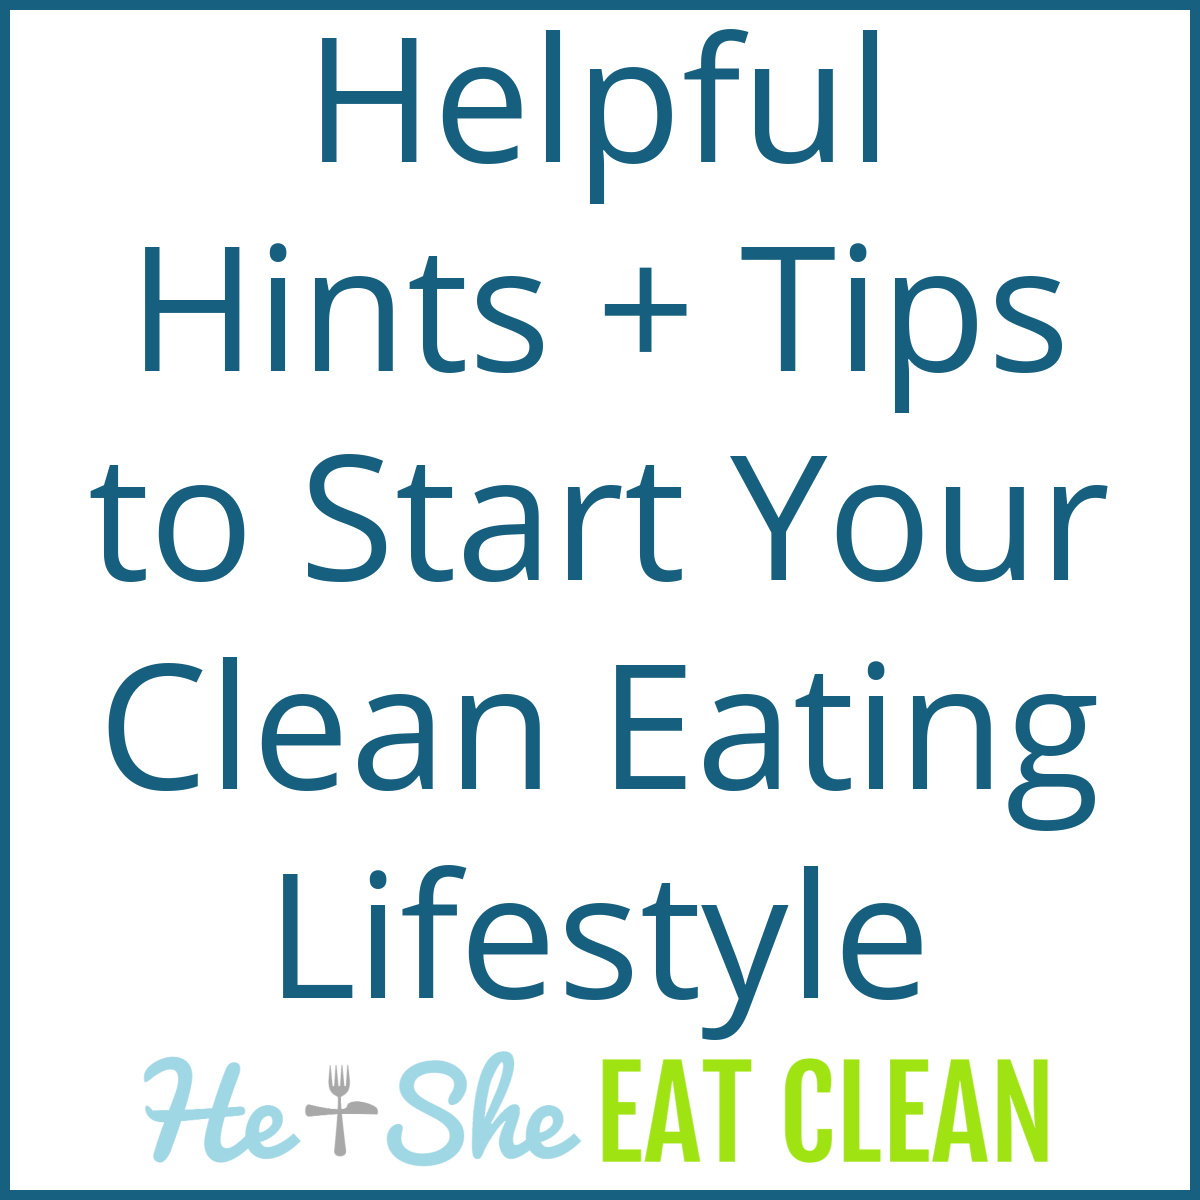 text reads Helpful Hints + Tips to Start Your Clean Eating Lifestyle